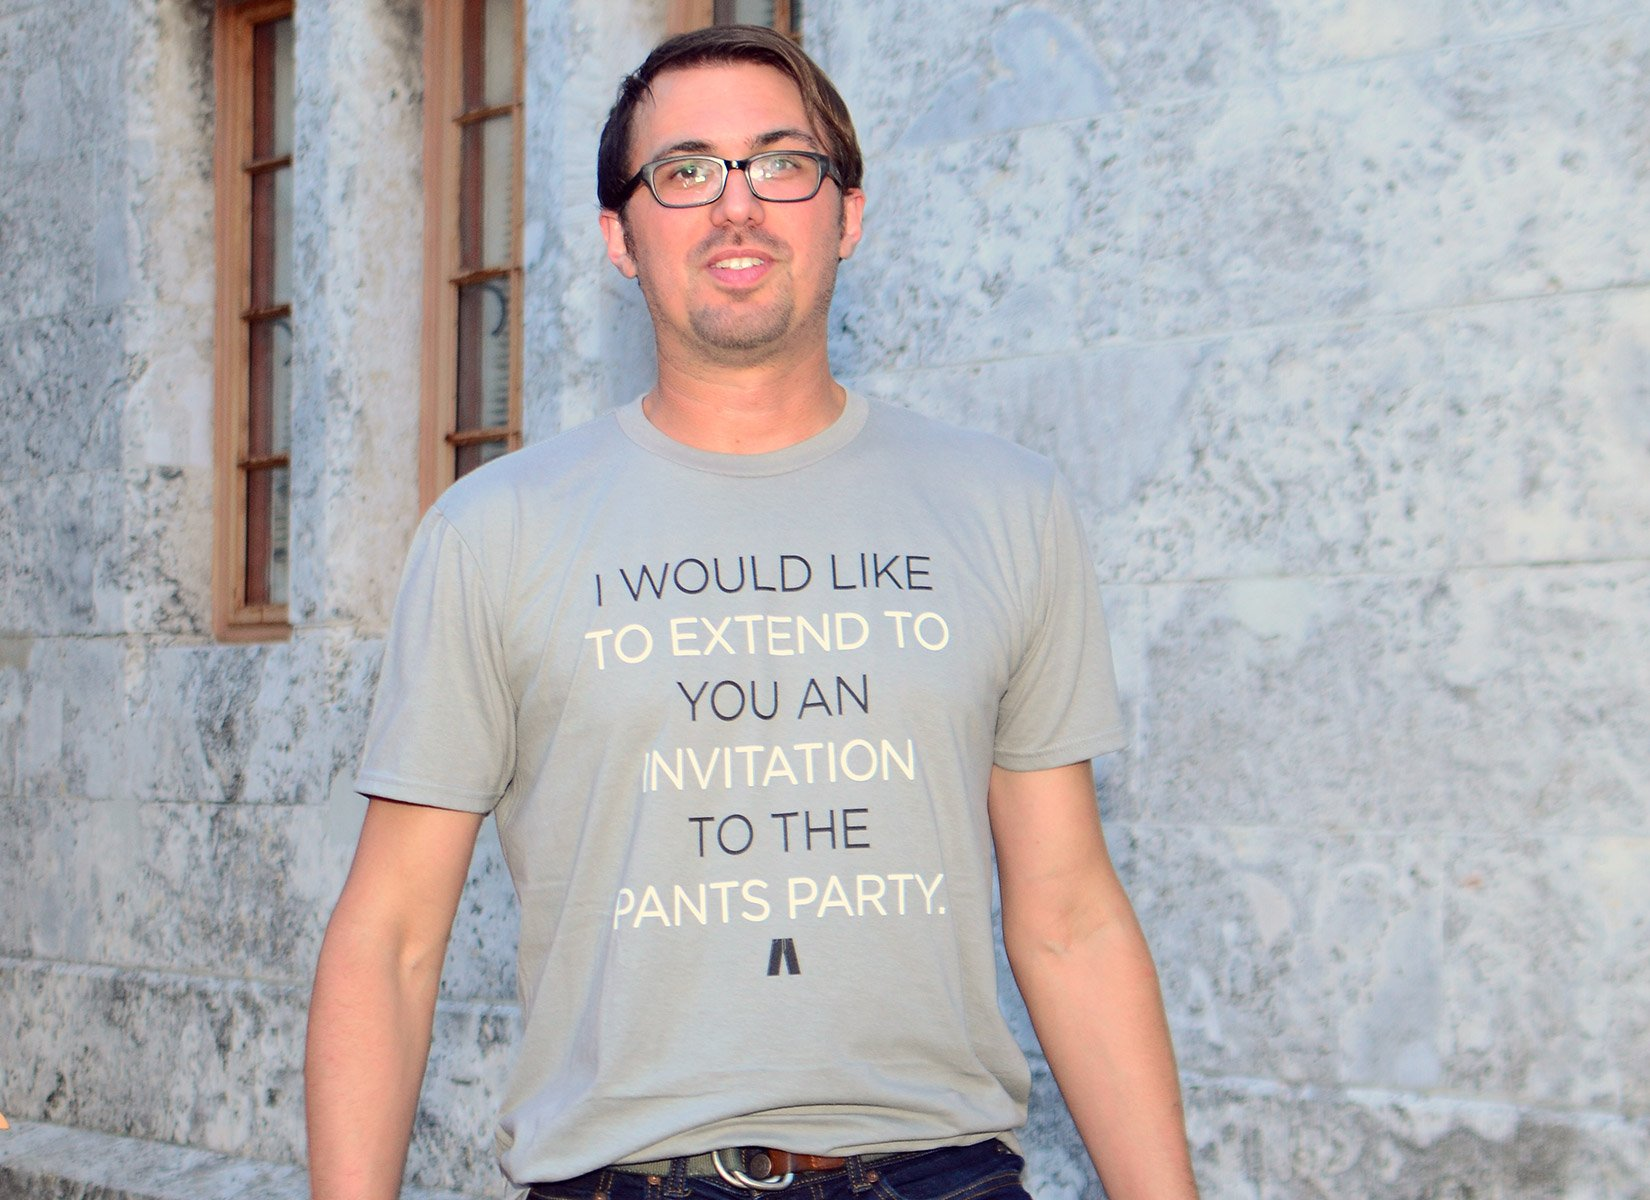 Invitation To The Pants Party on Mens T-Shirt